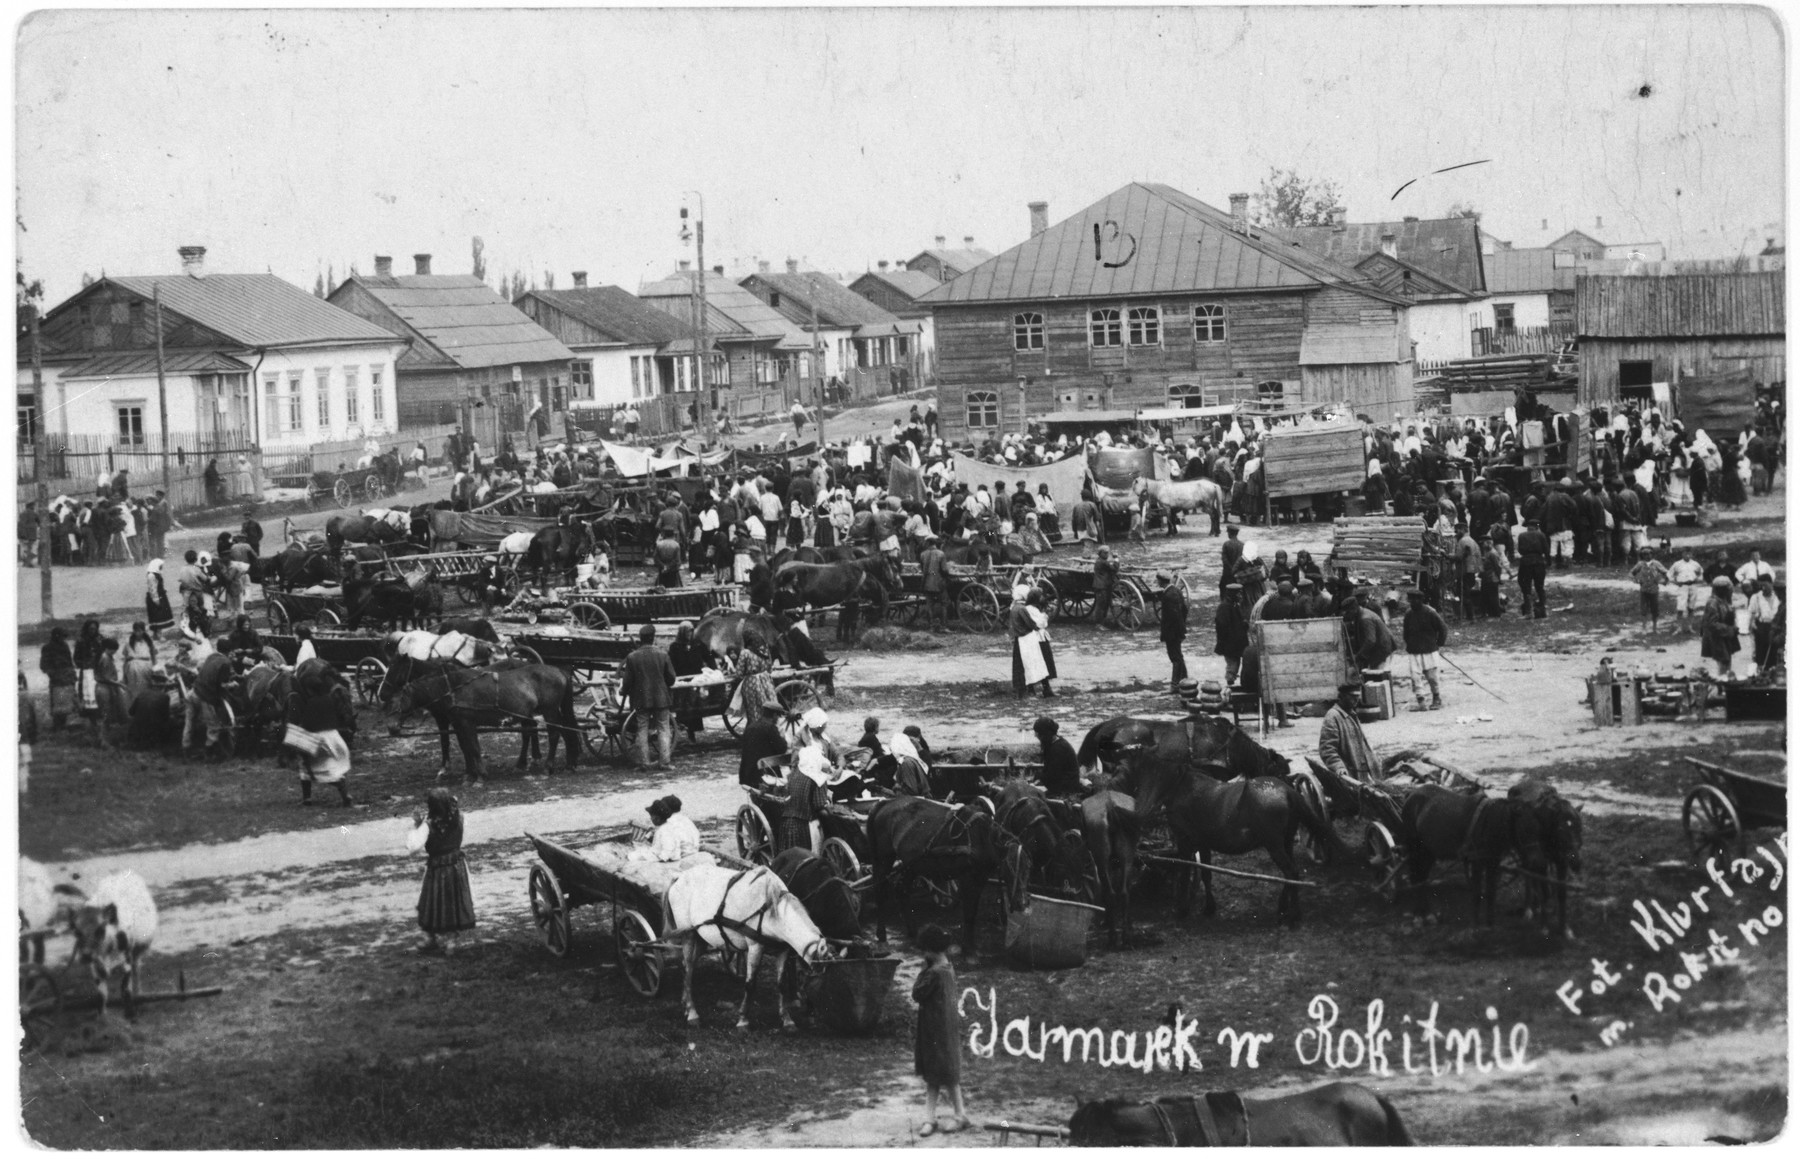 View of the Rokitno market place.  The synagoge is visible in the background.